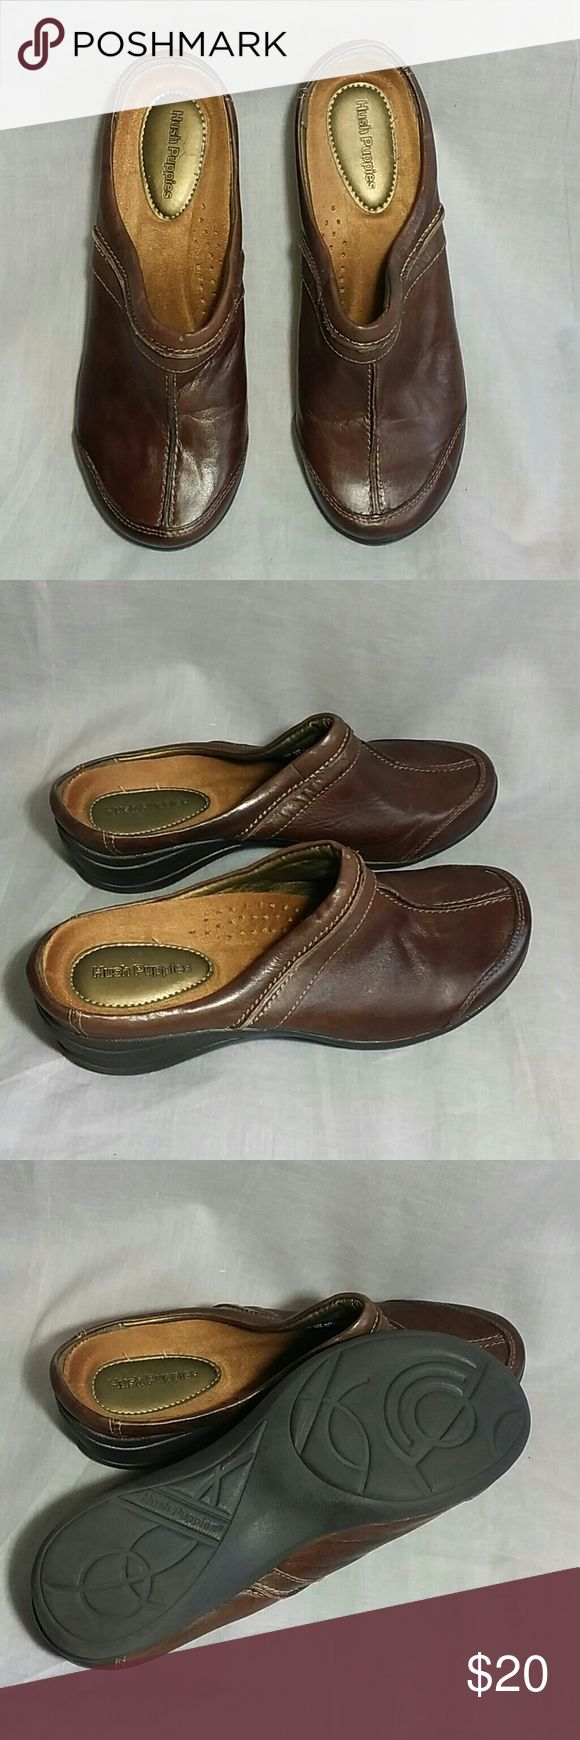 Women's Hush Puppies Clogs Shoes Brown 7 M Leather Item is in a good condition NO PETS AND SMOKE FREE HOME. Hush Puppies Shoes Mules & Clogs